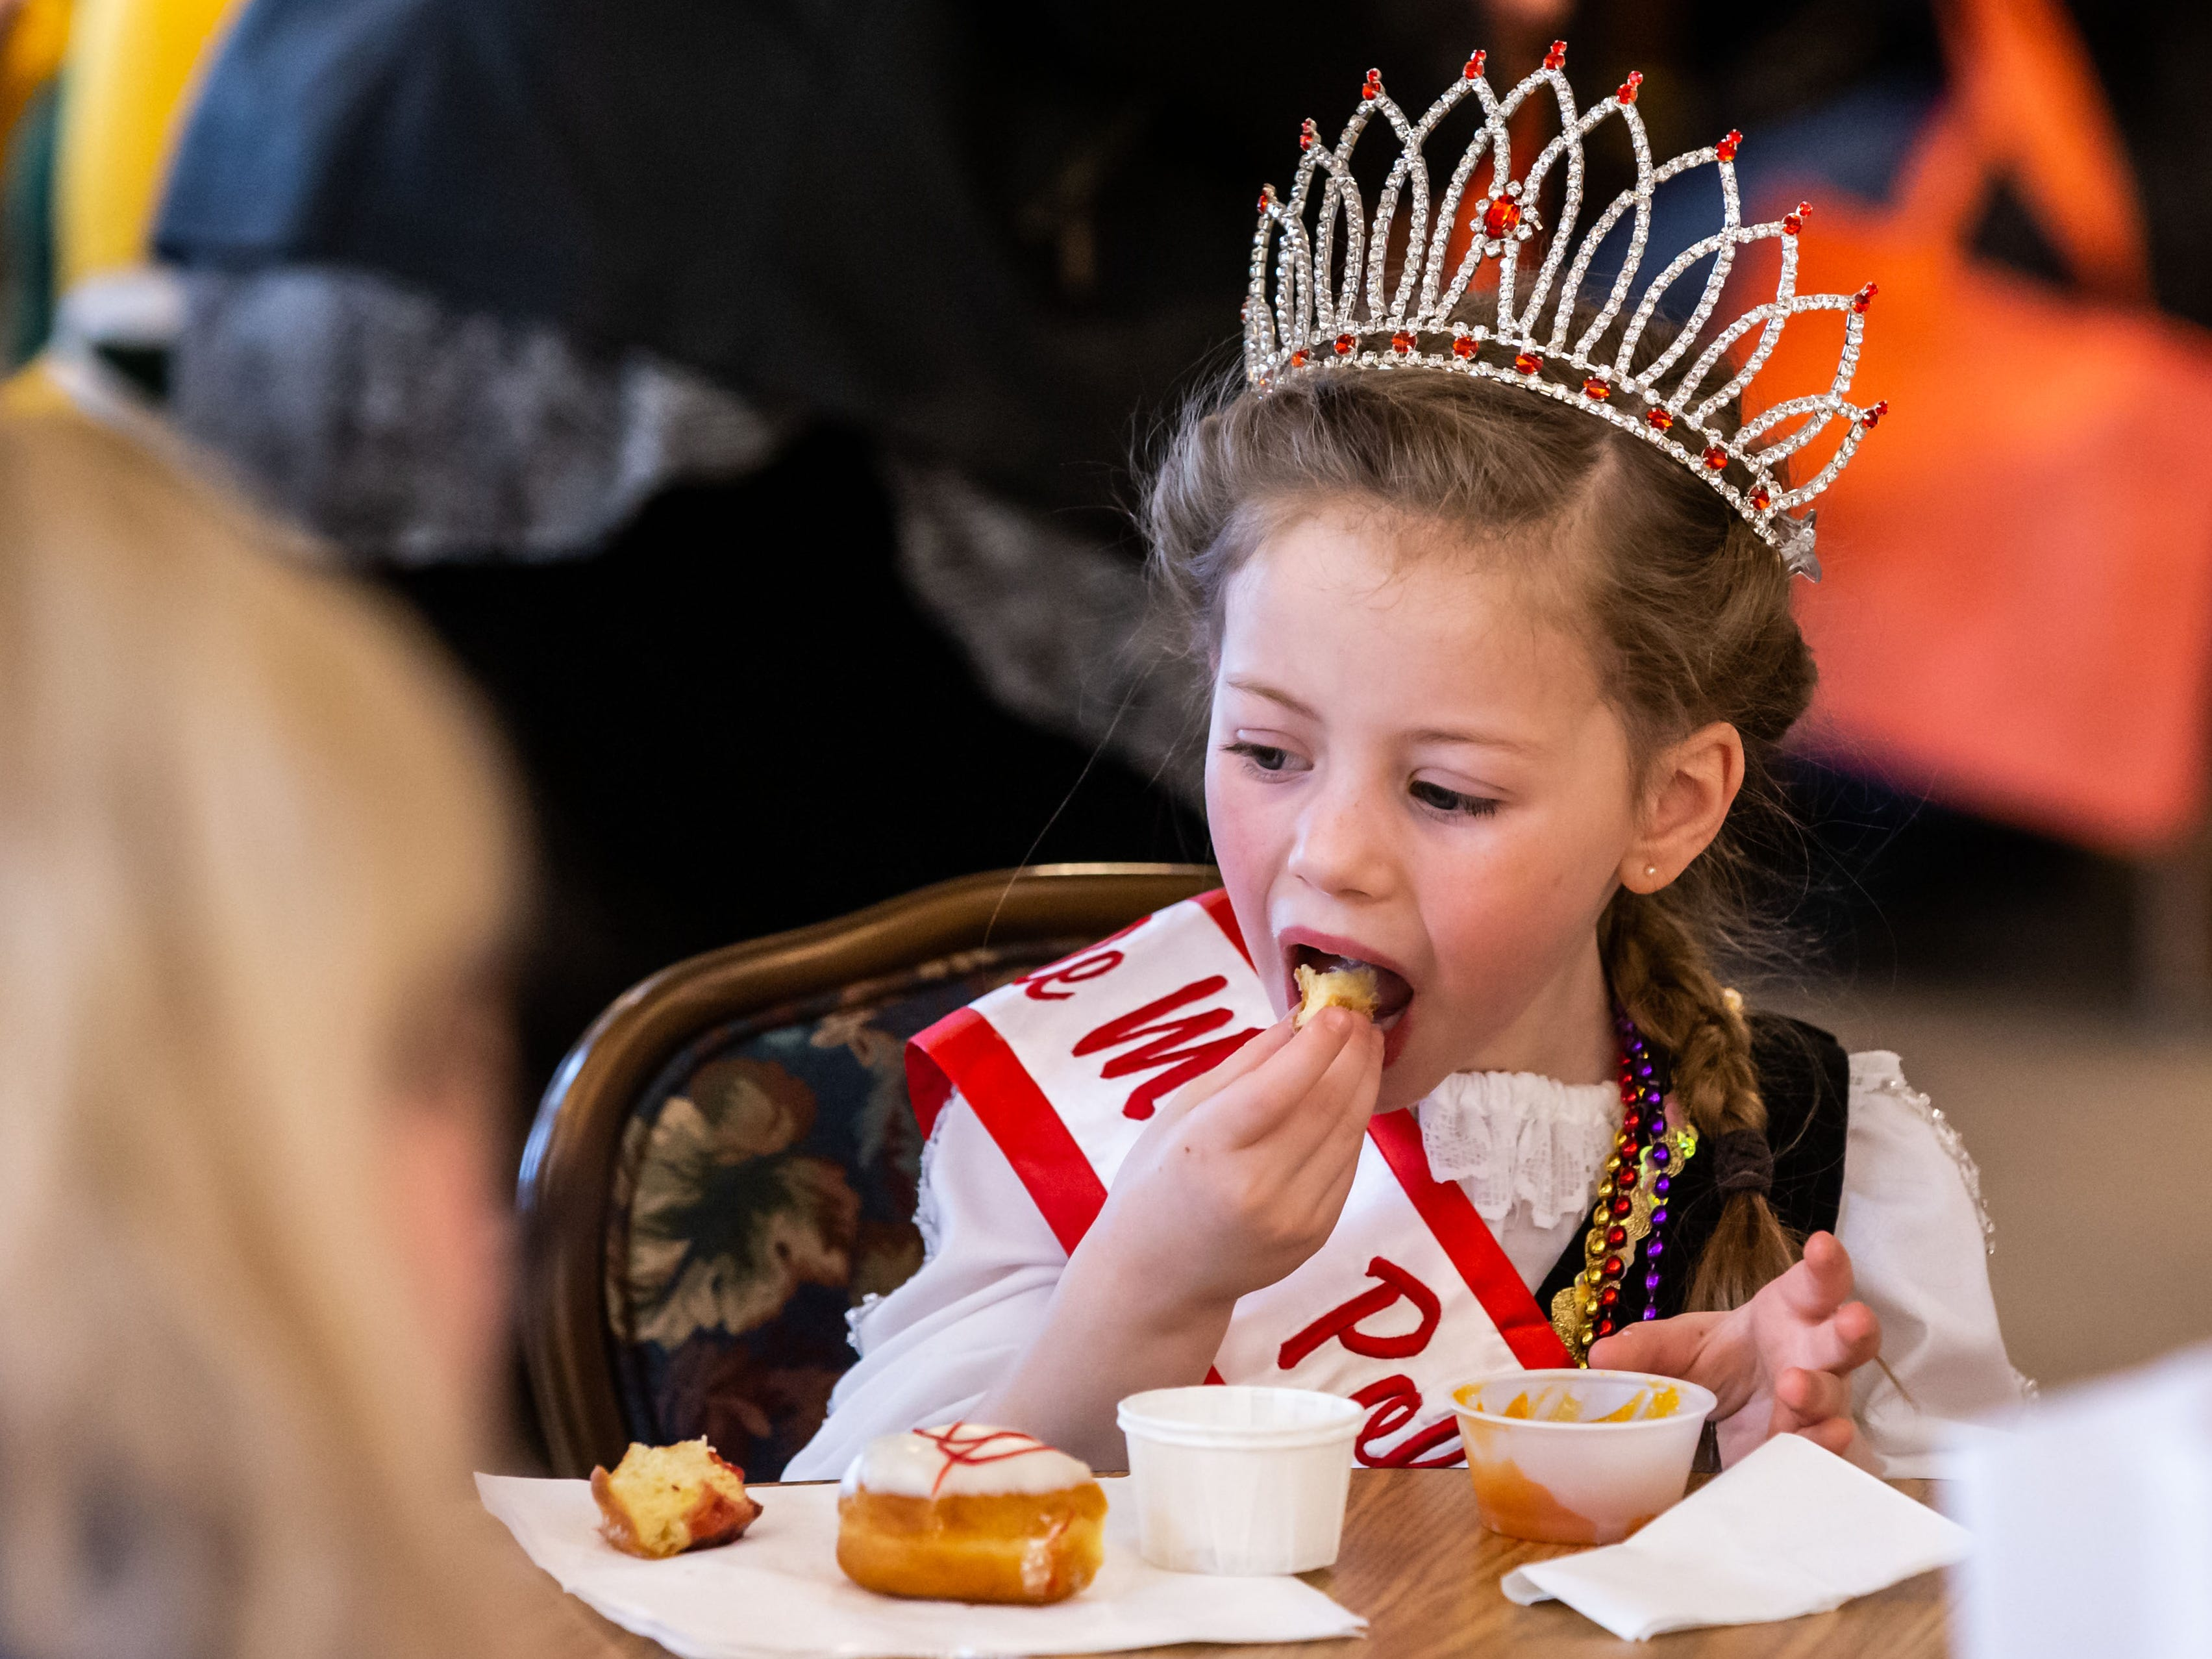 Little Miss Polish Fest, Georgia Gueller, 5, of River Hills, samples a paczek during the Wisconsin Bakers Association's Paczki Preview Party at the Polish Center of Wisconsin in Franklin on Sunday, Feb. 24, 2019. The event showcases some of the best paczki from the area.